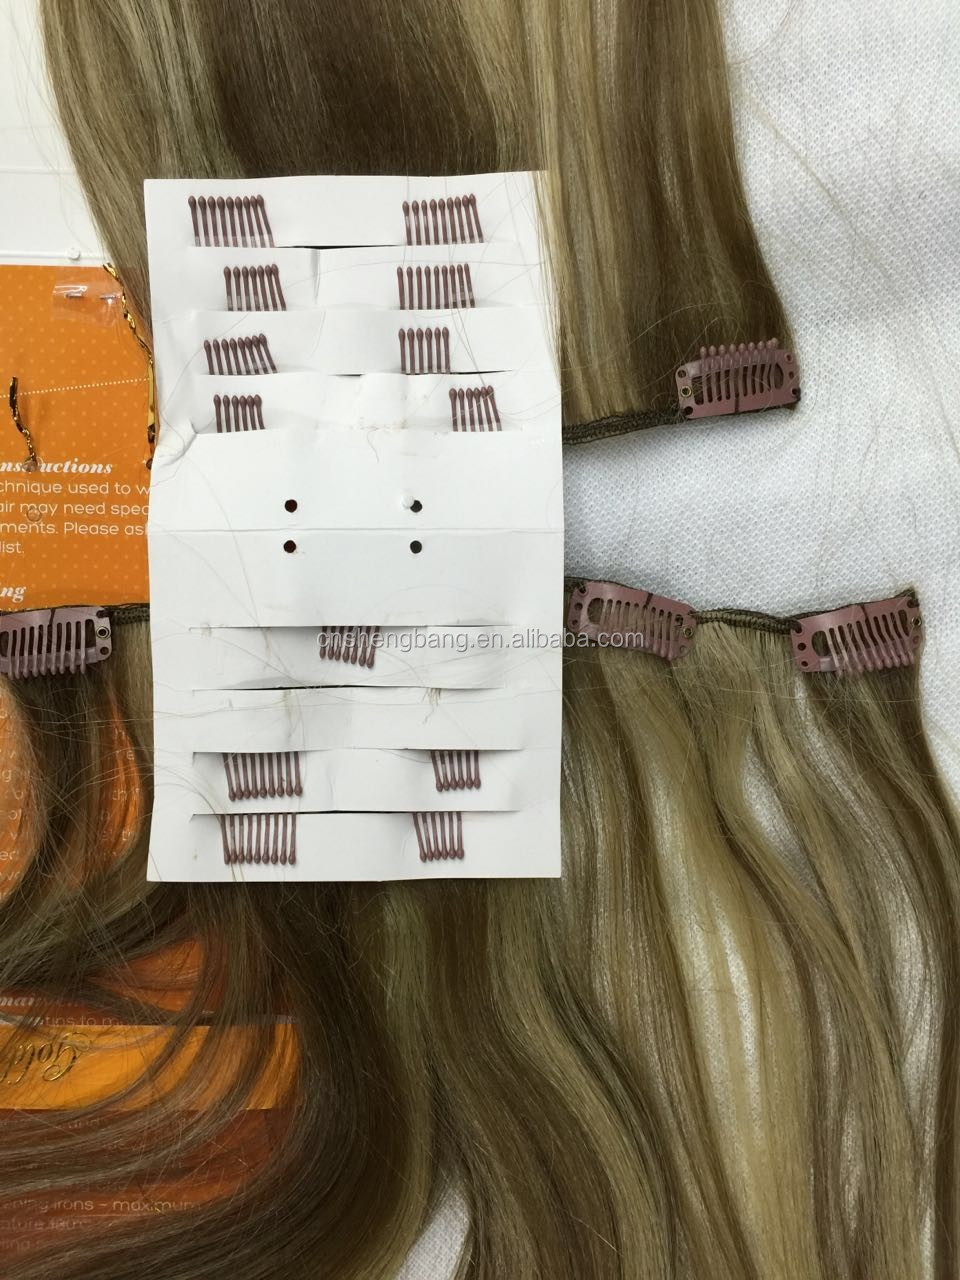 "The Look Gold 22 Synthetic hair weave with clips,7pcs clips on 22"" weave,17clips/100g/pcs ,color P10-16"